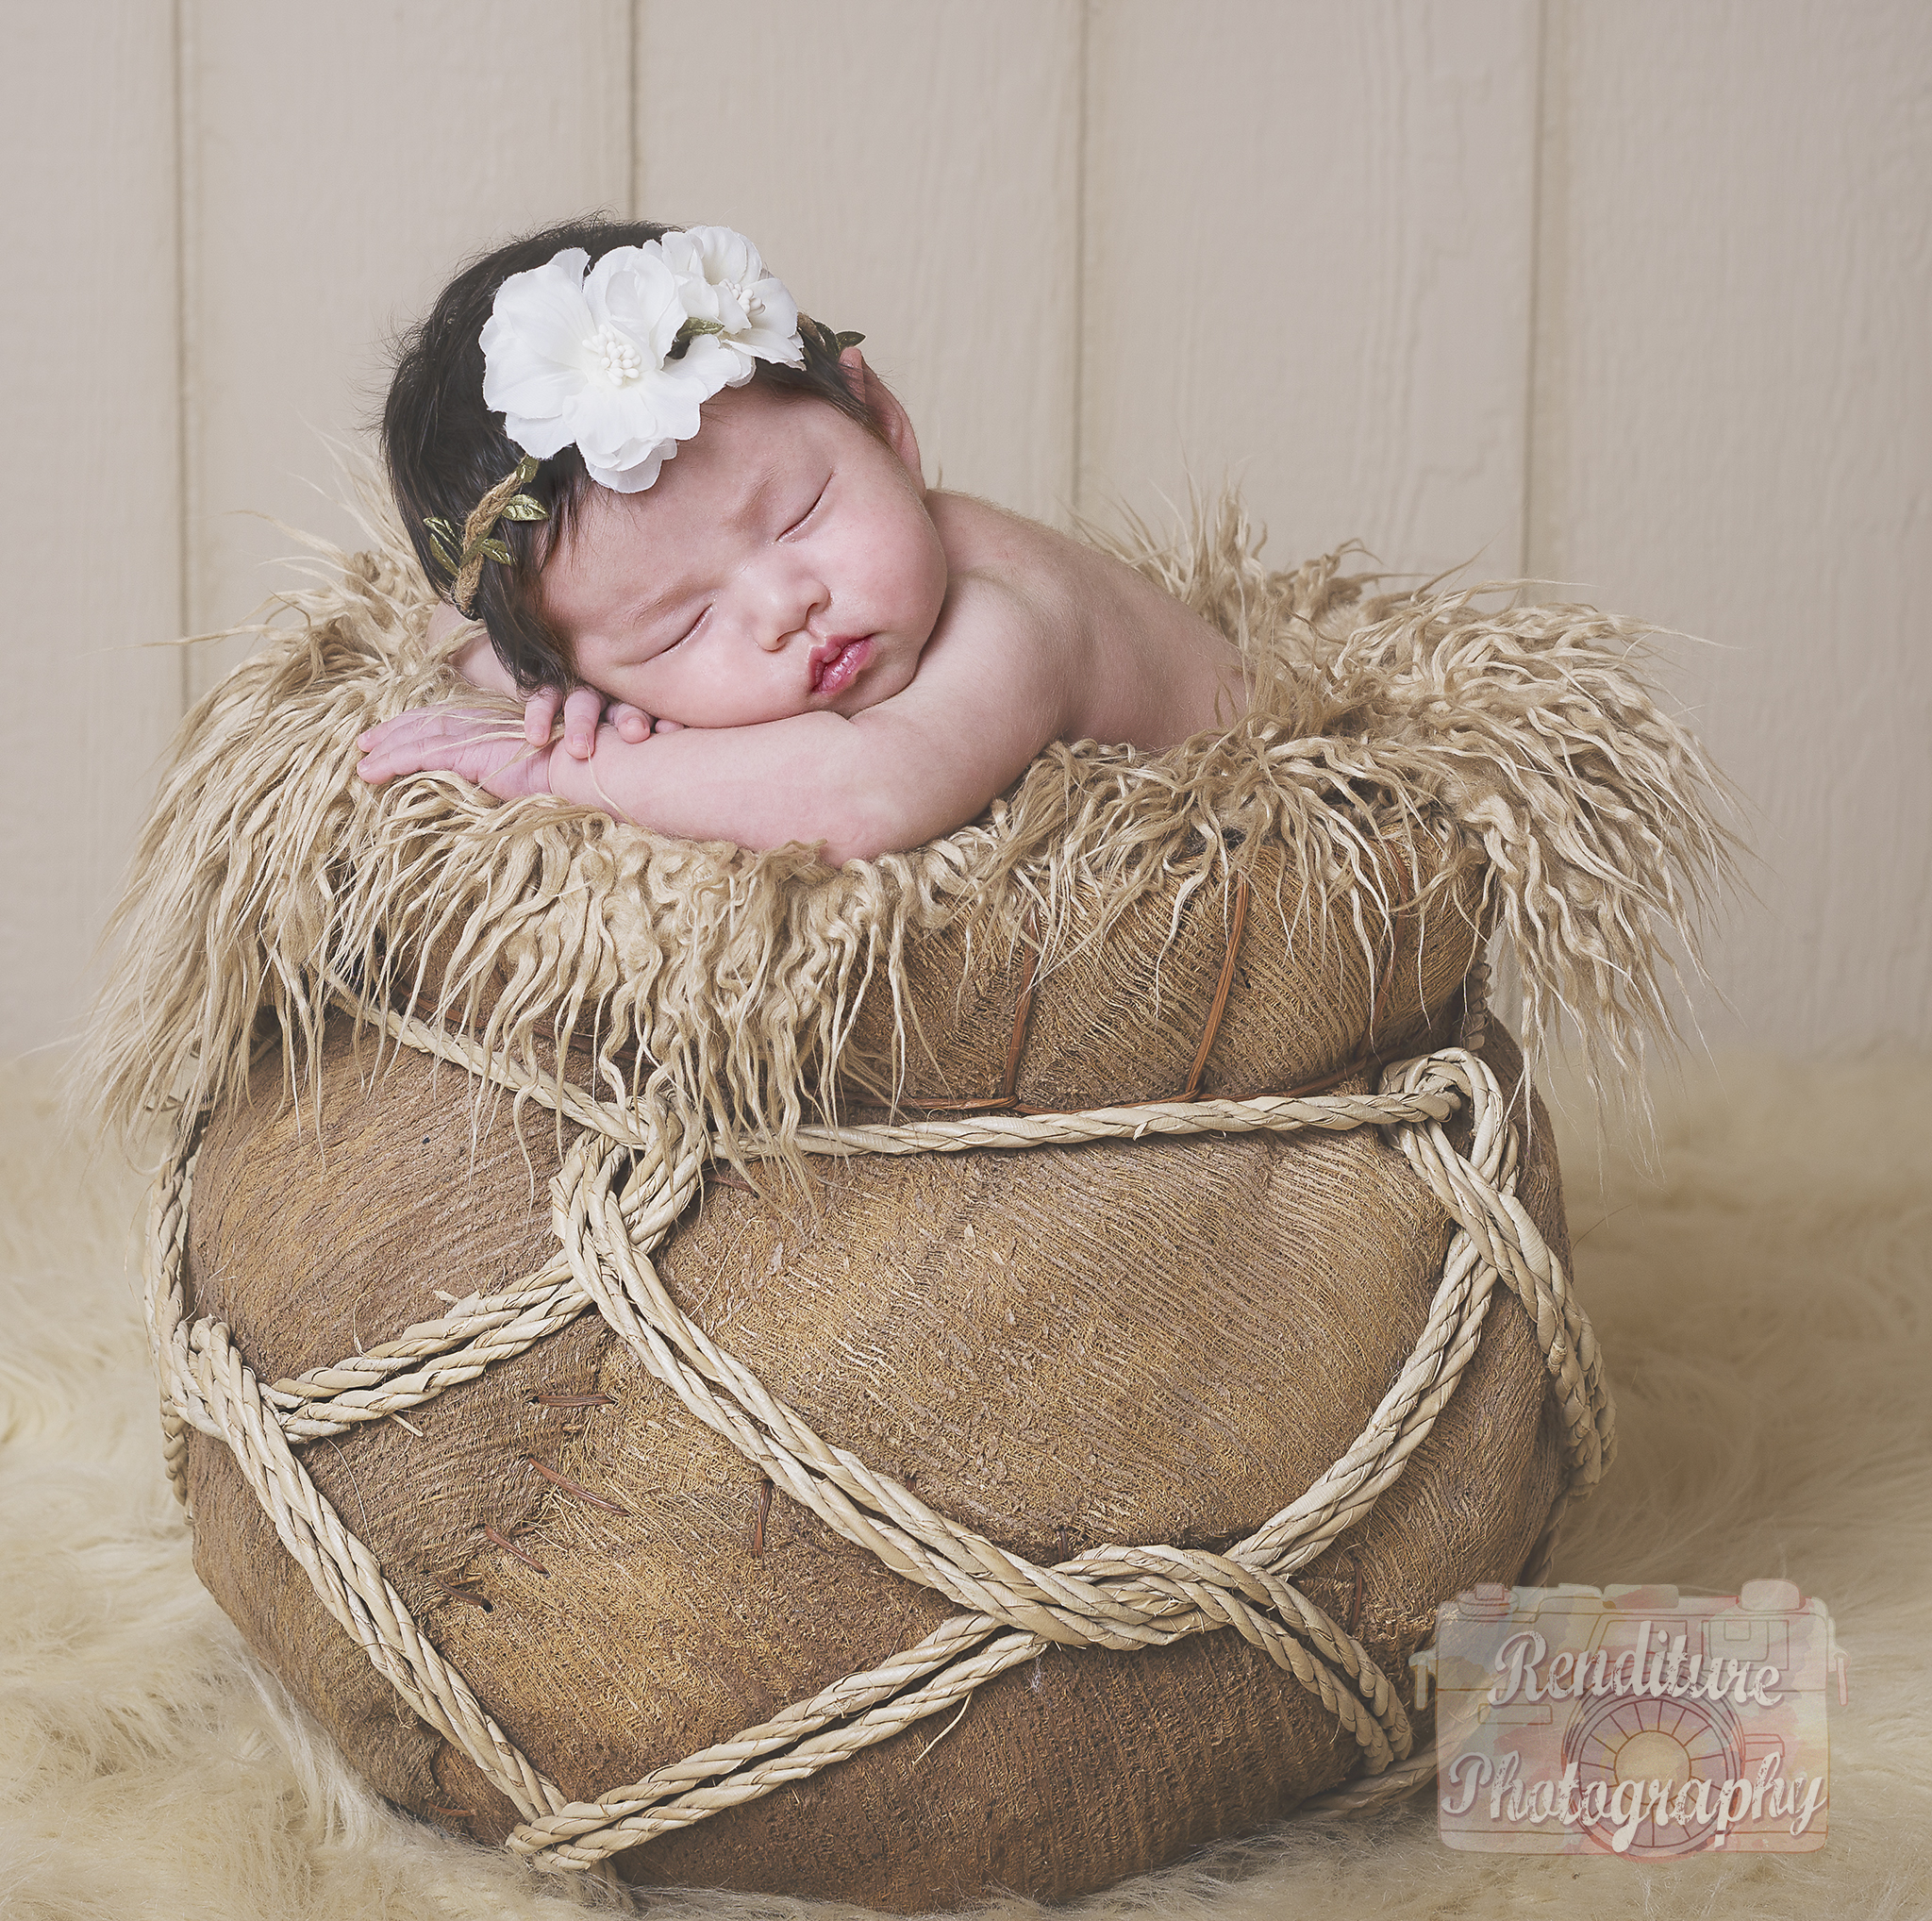 Saskatoon-Newborn-Family-Renditure-Baby-Photography-Photographer-Maternity-Pregnancy-Saskatchewan-197mFBR.jpg